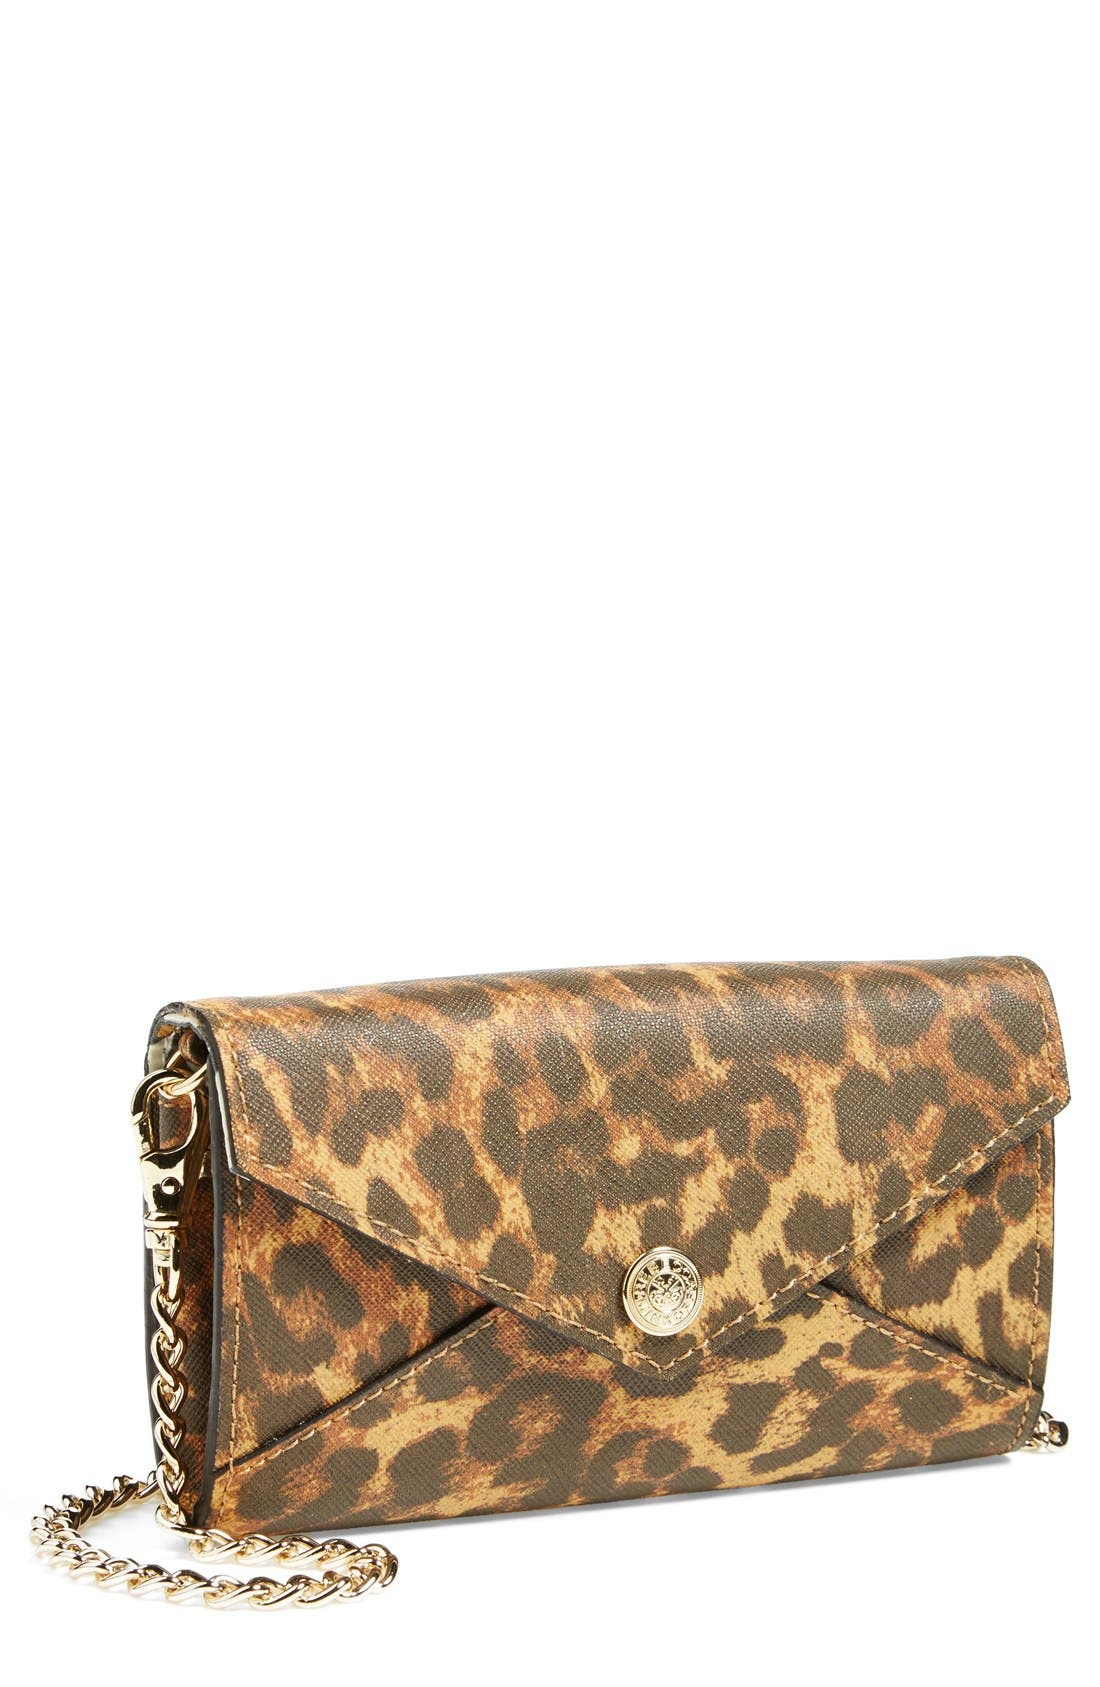 Alternate Image 1 Selected - Rebecca Minkoff 'Mini Wallet on a Chain' Crossbody Bag